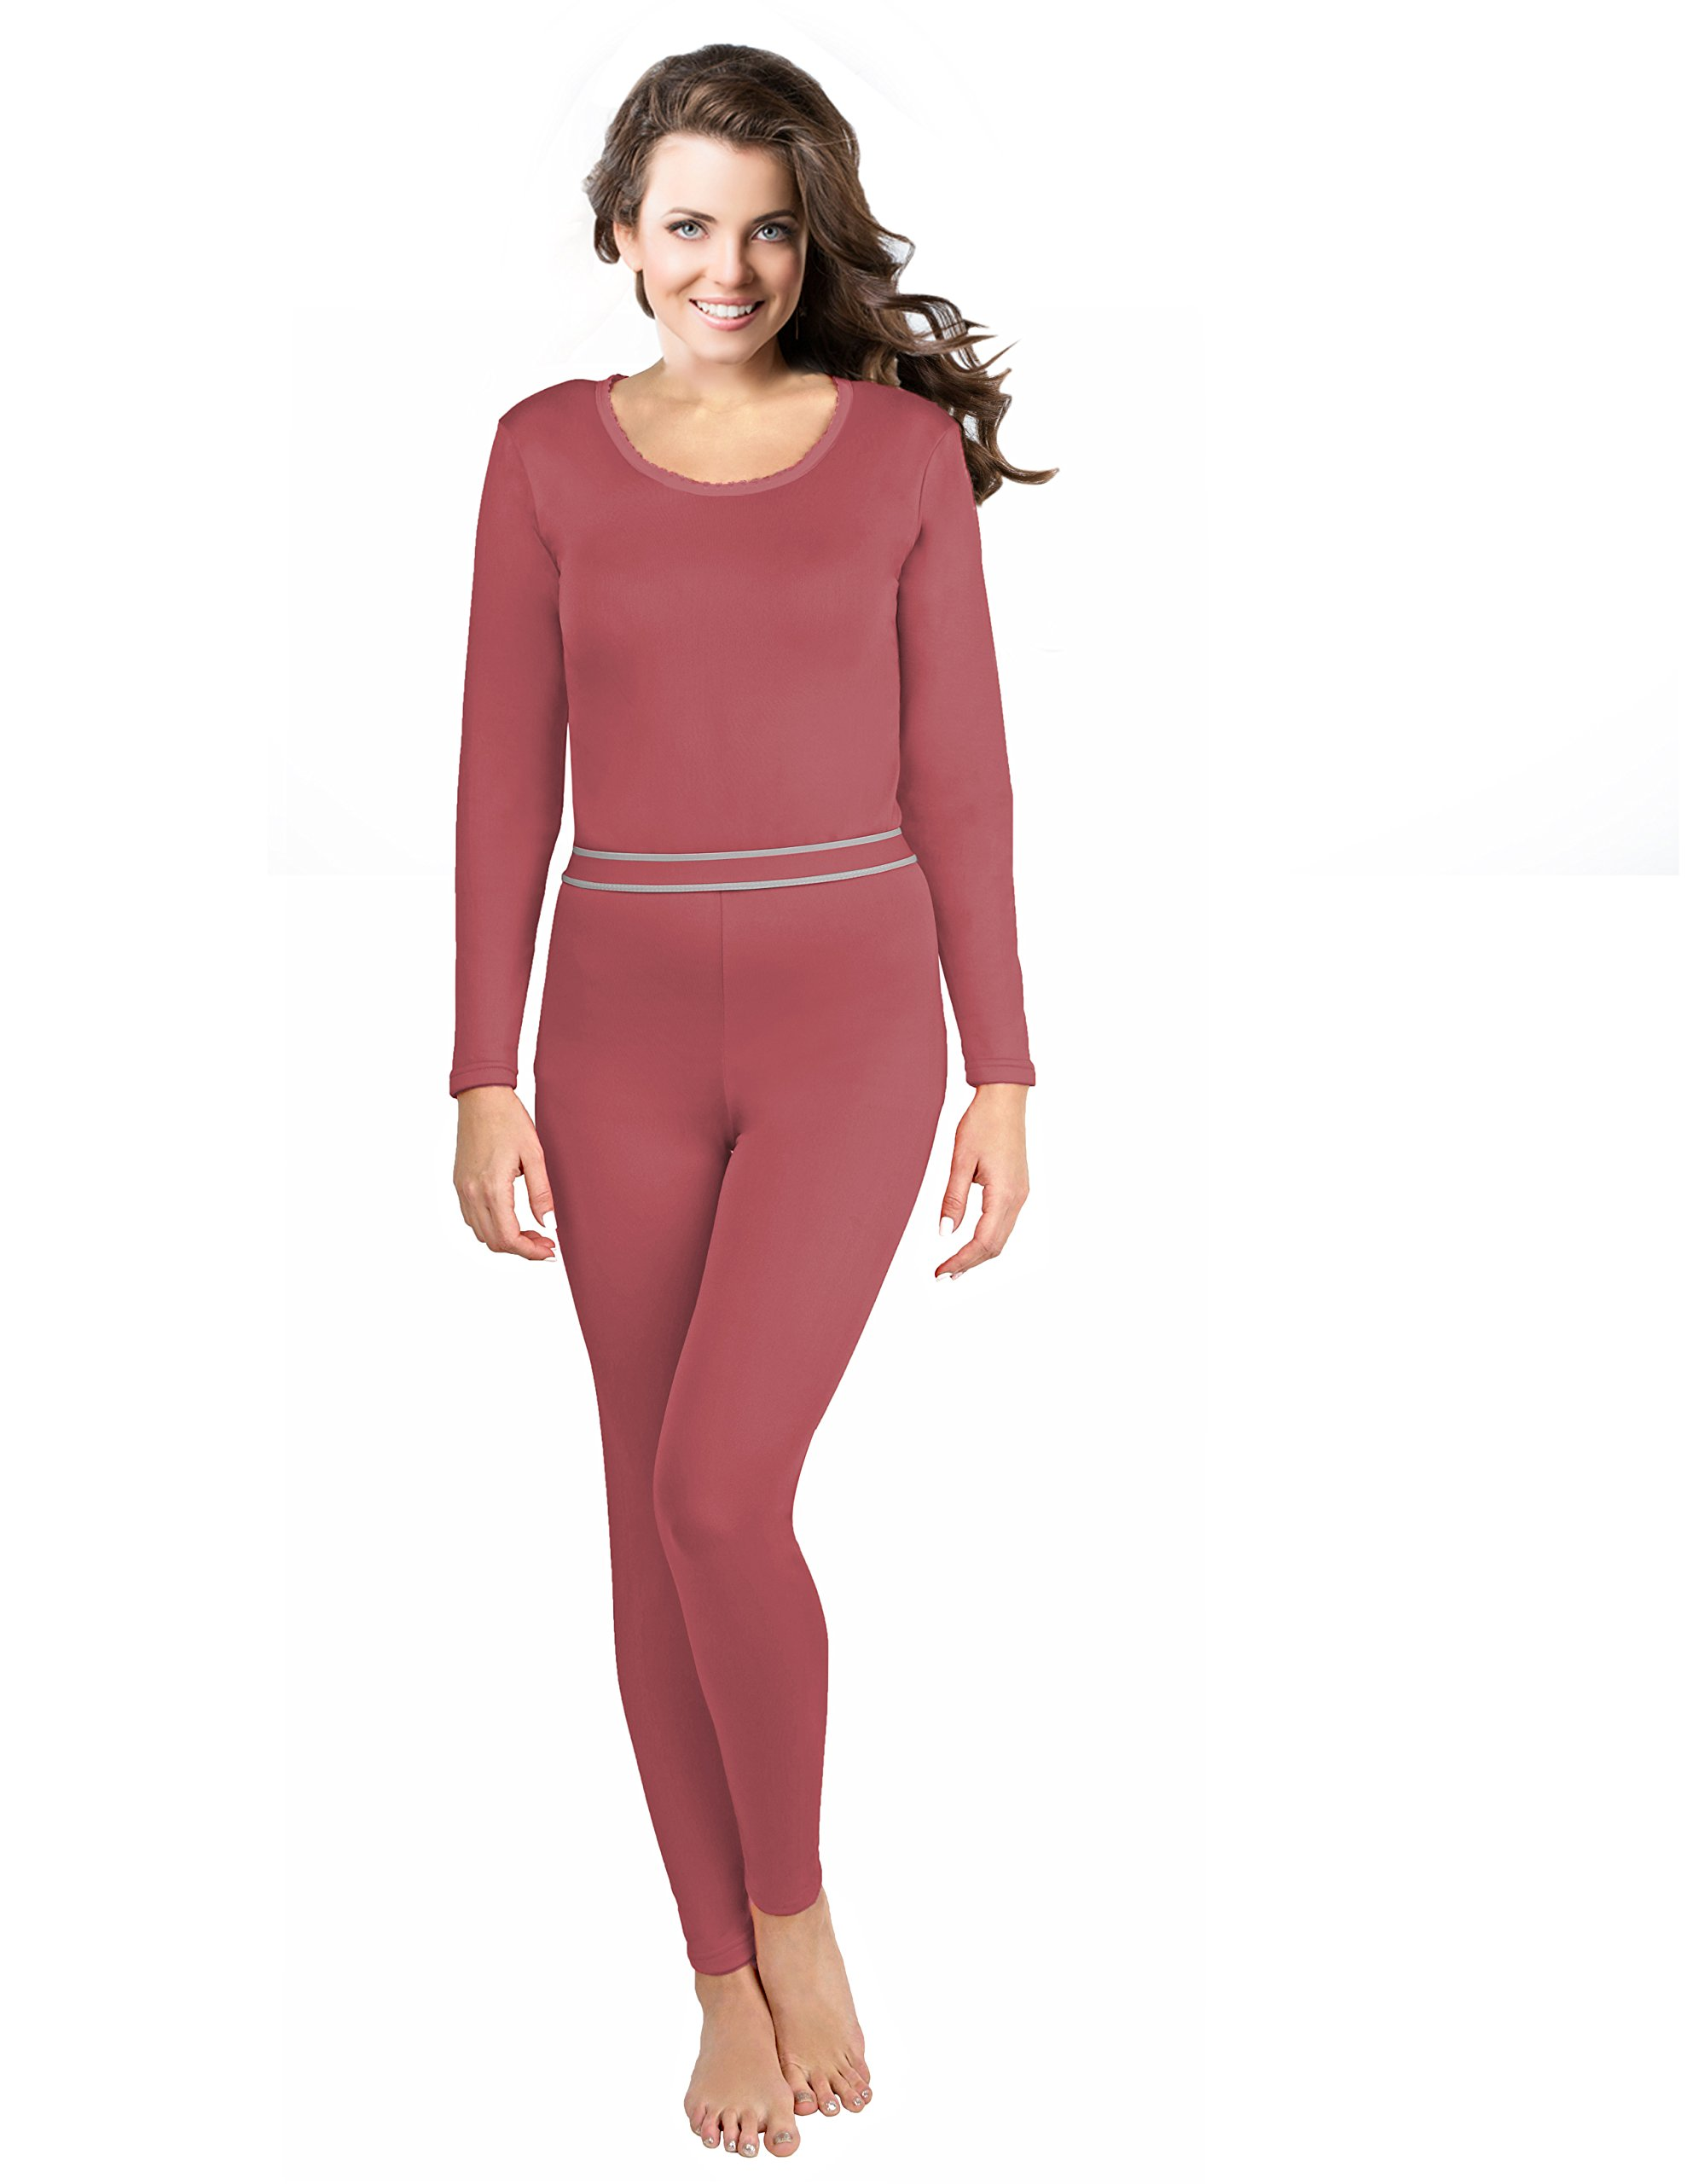 Rocky Thermal Underwear for Women Fleece Lined Thermals Women's Base Layer Long John Set Mauve Pink by Rocky